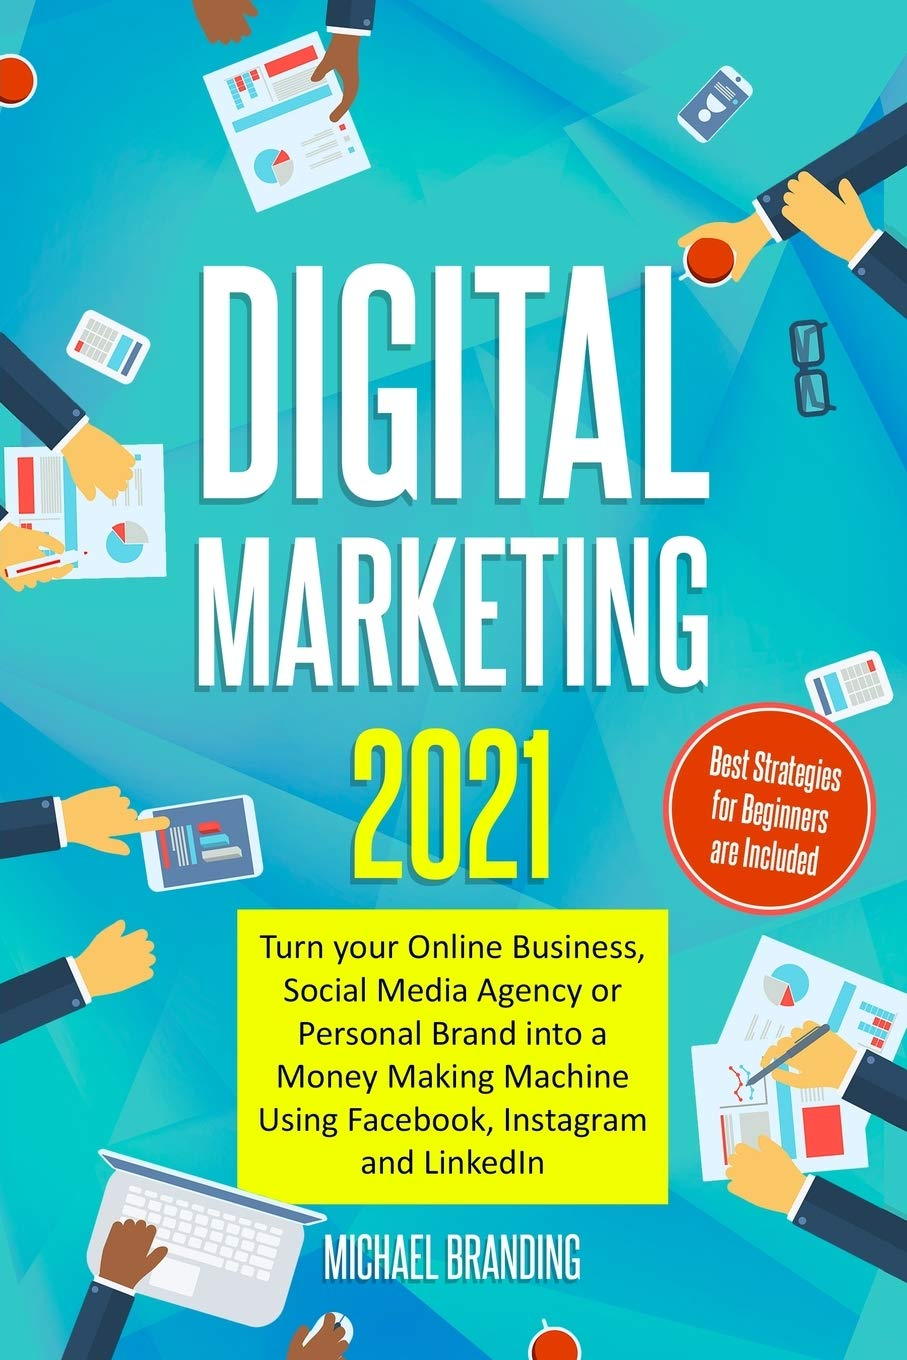 Digital Marketing 2021: Turn your Online Business, Social Media Agency or Personal  Brand into a Money Making Machine Using Facebook, Instagram and LinkedIn -  Best Strategies for Beginners are Included: Branding, Michael: